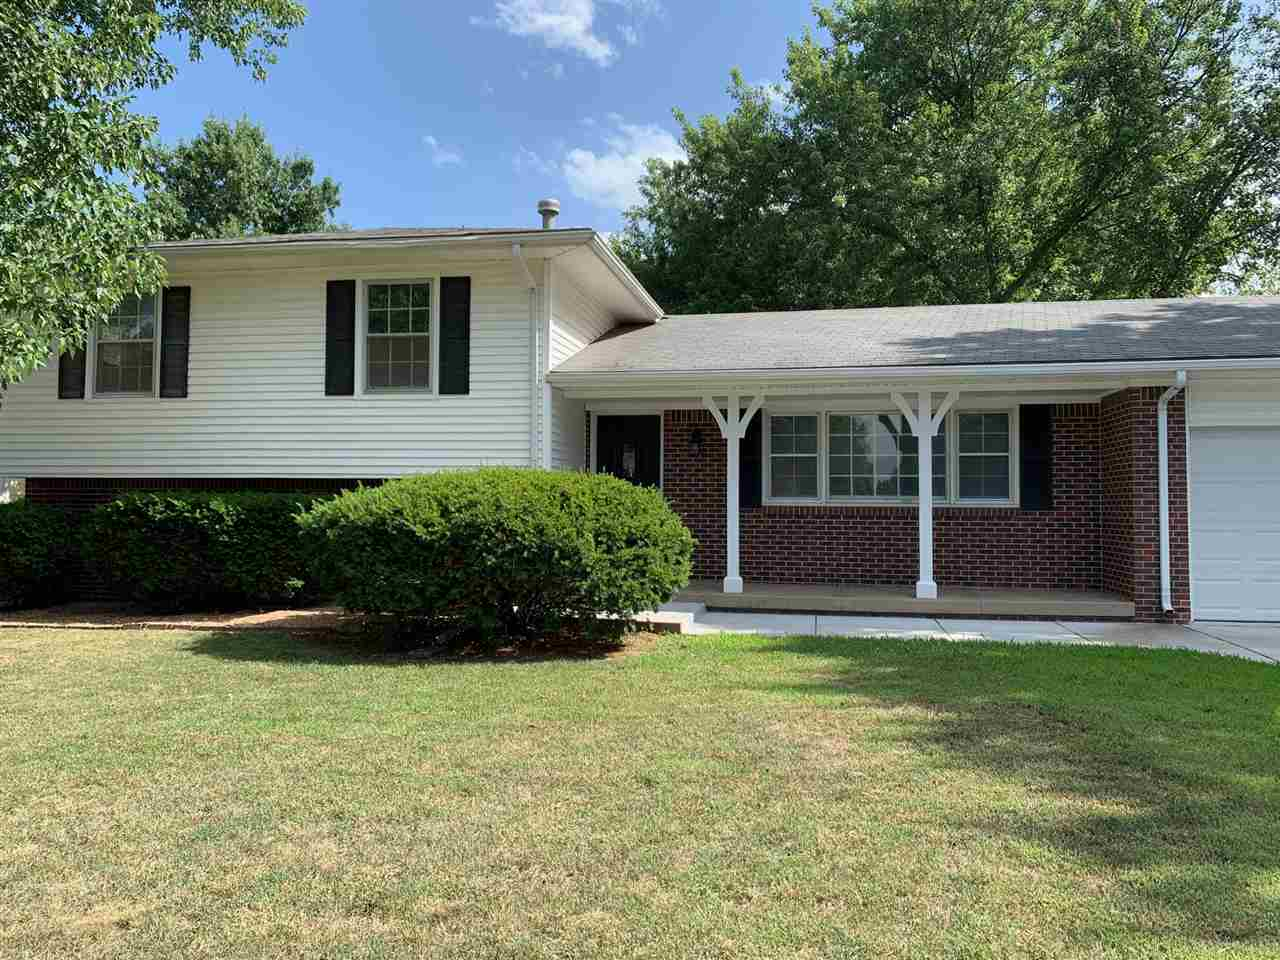 COMPLETELY REMODELED, MUST SEE!!! Quiet Westlink Neighborhood w/mature trees. This home has high-end